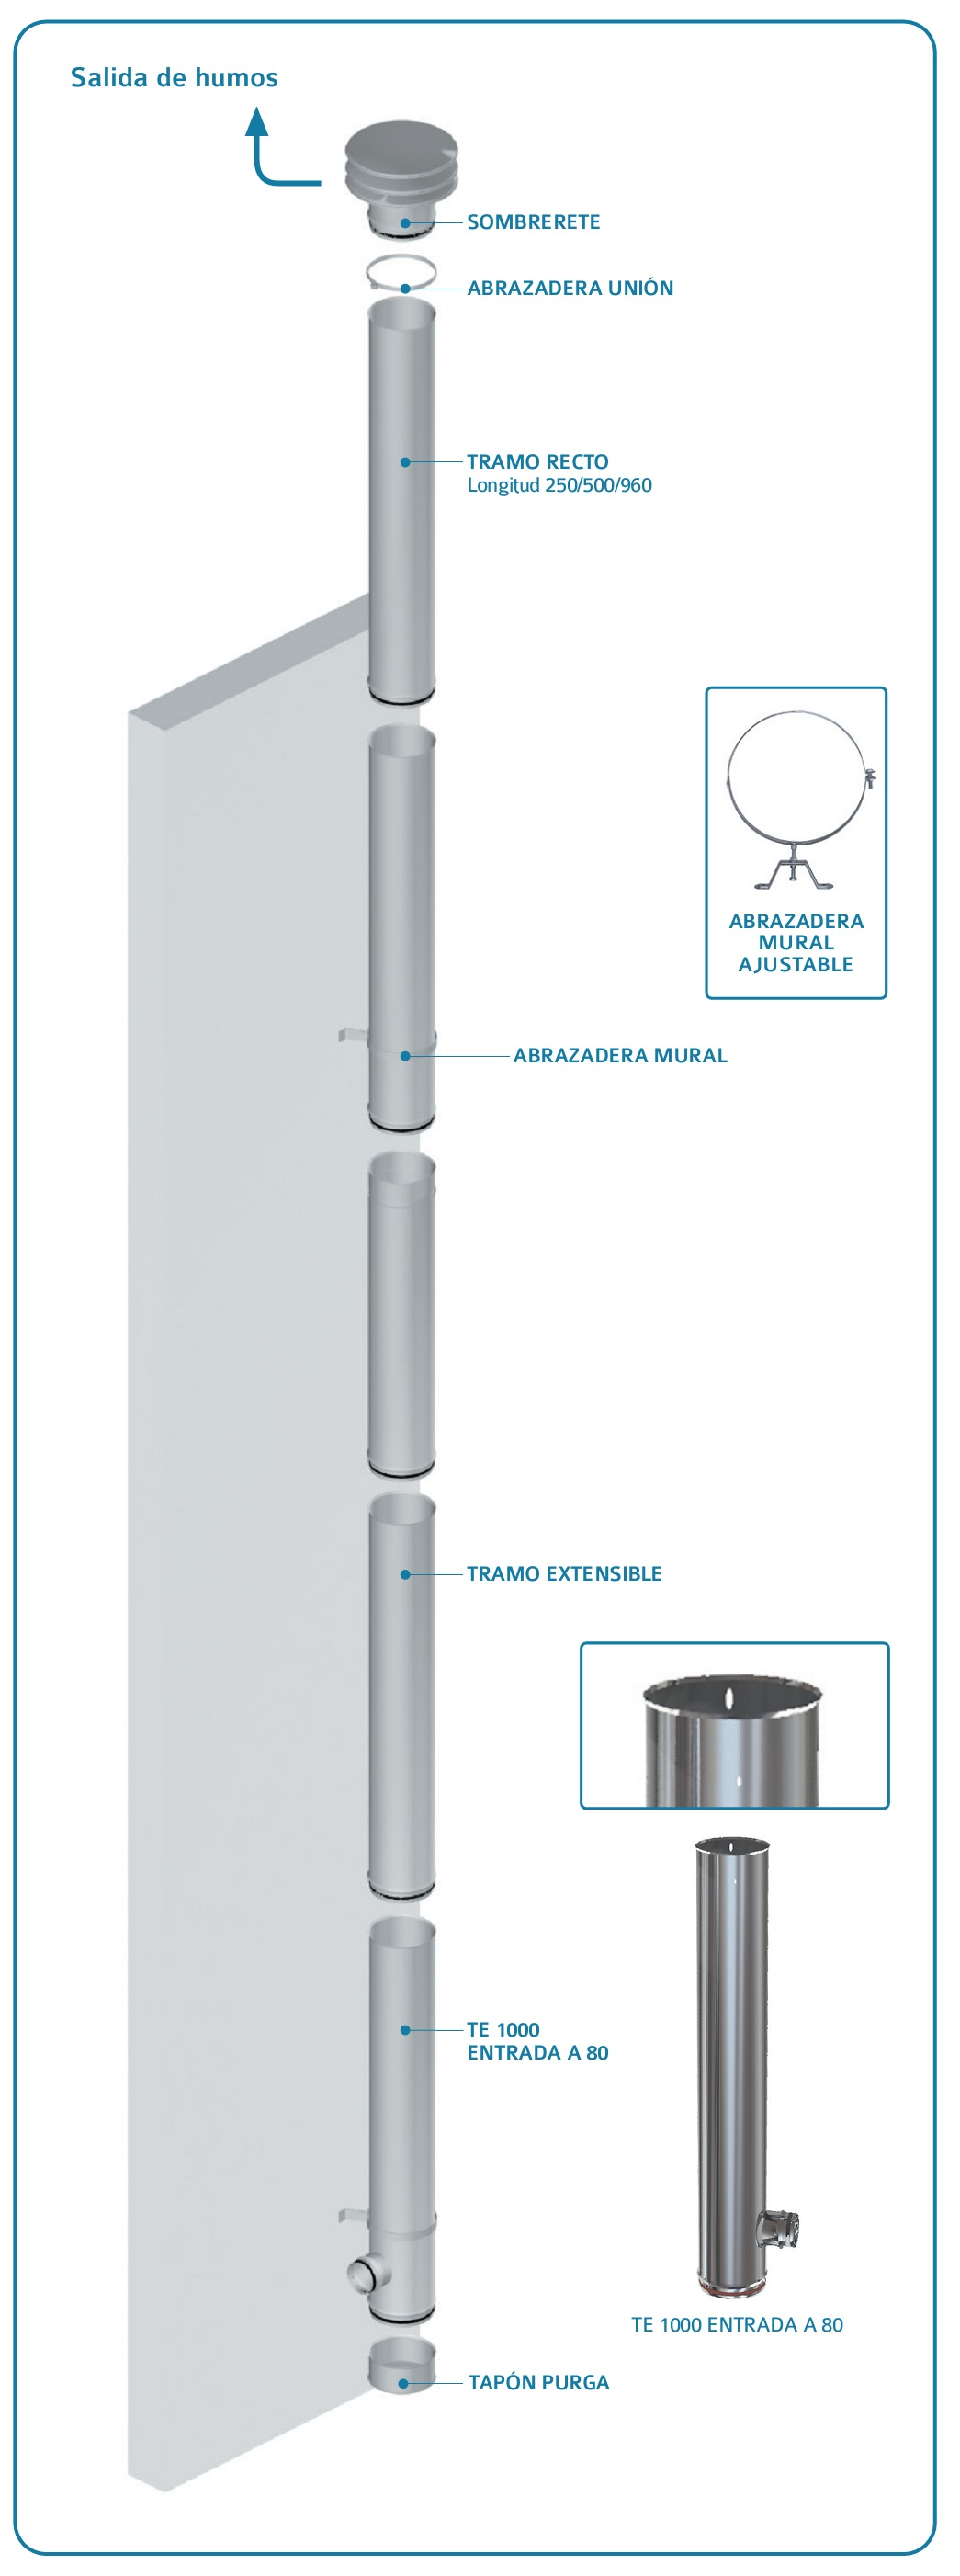 Esquema chimenea modular - pared simple inox Practic